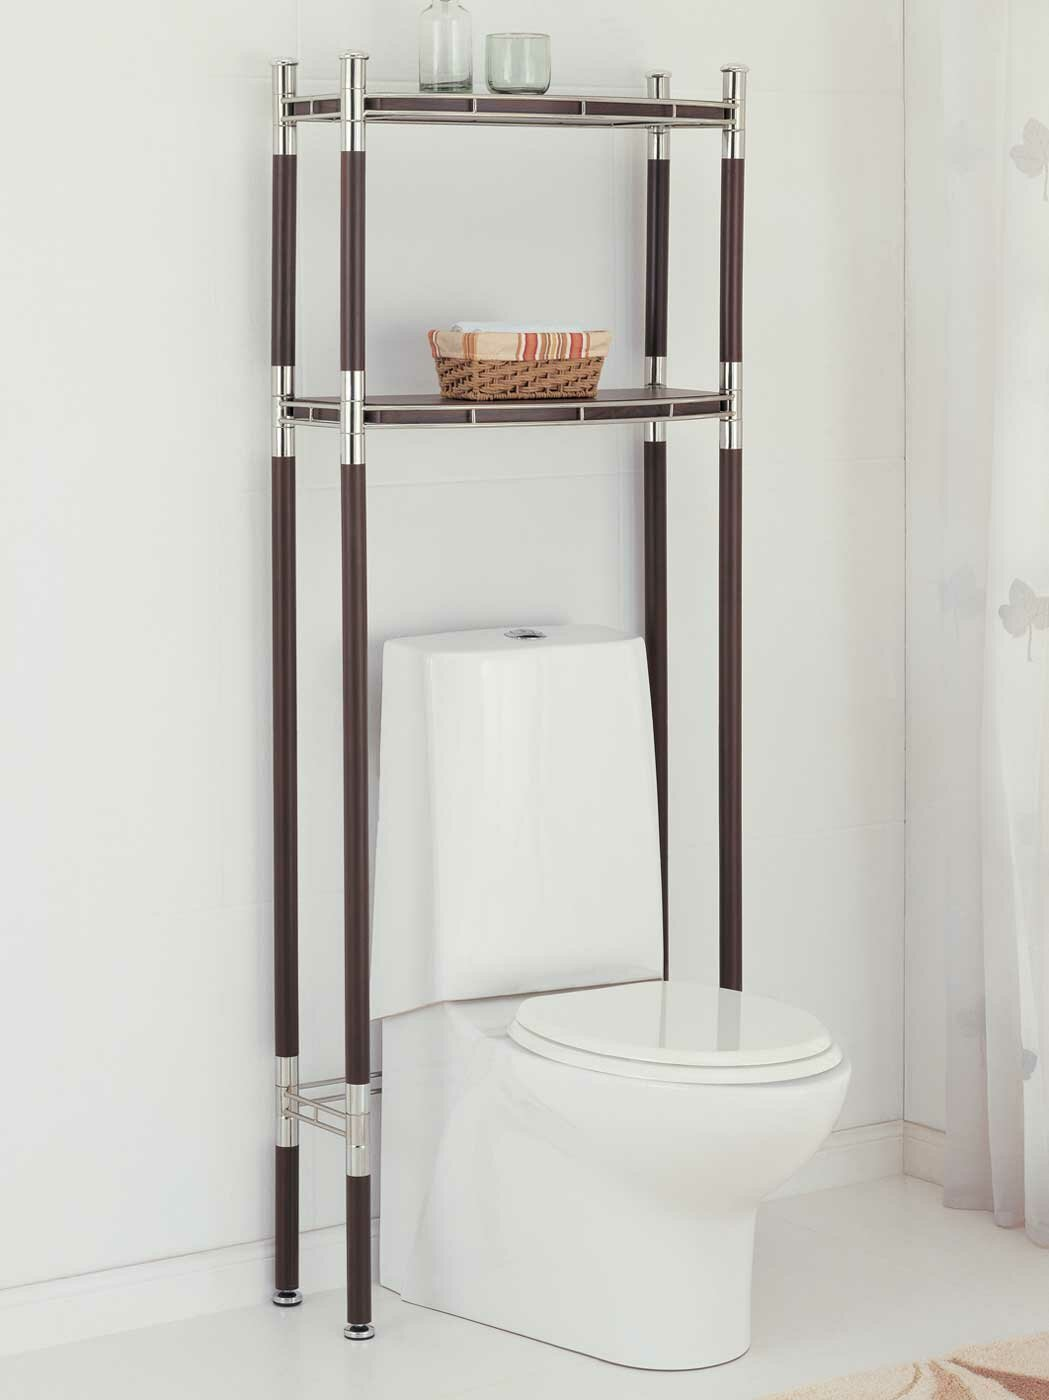 Bathroom Bathroom Space Saver Shelves Toilet Etagere Toilet Etagere